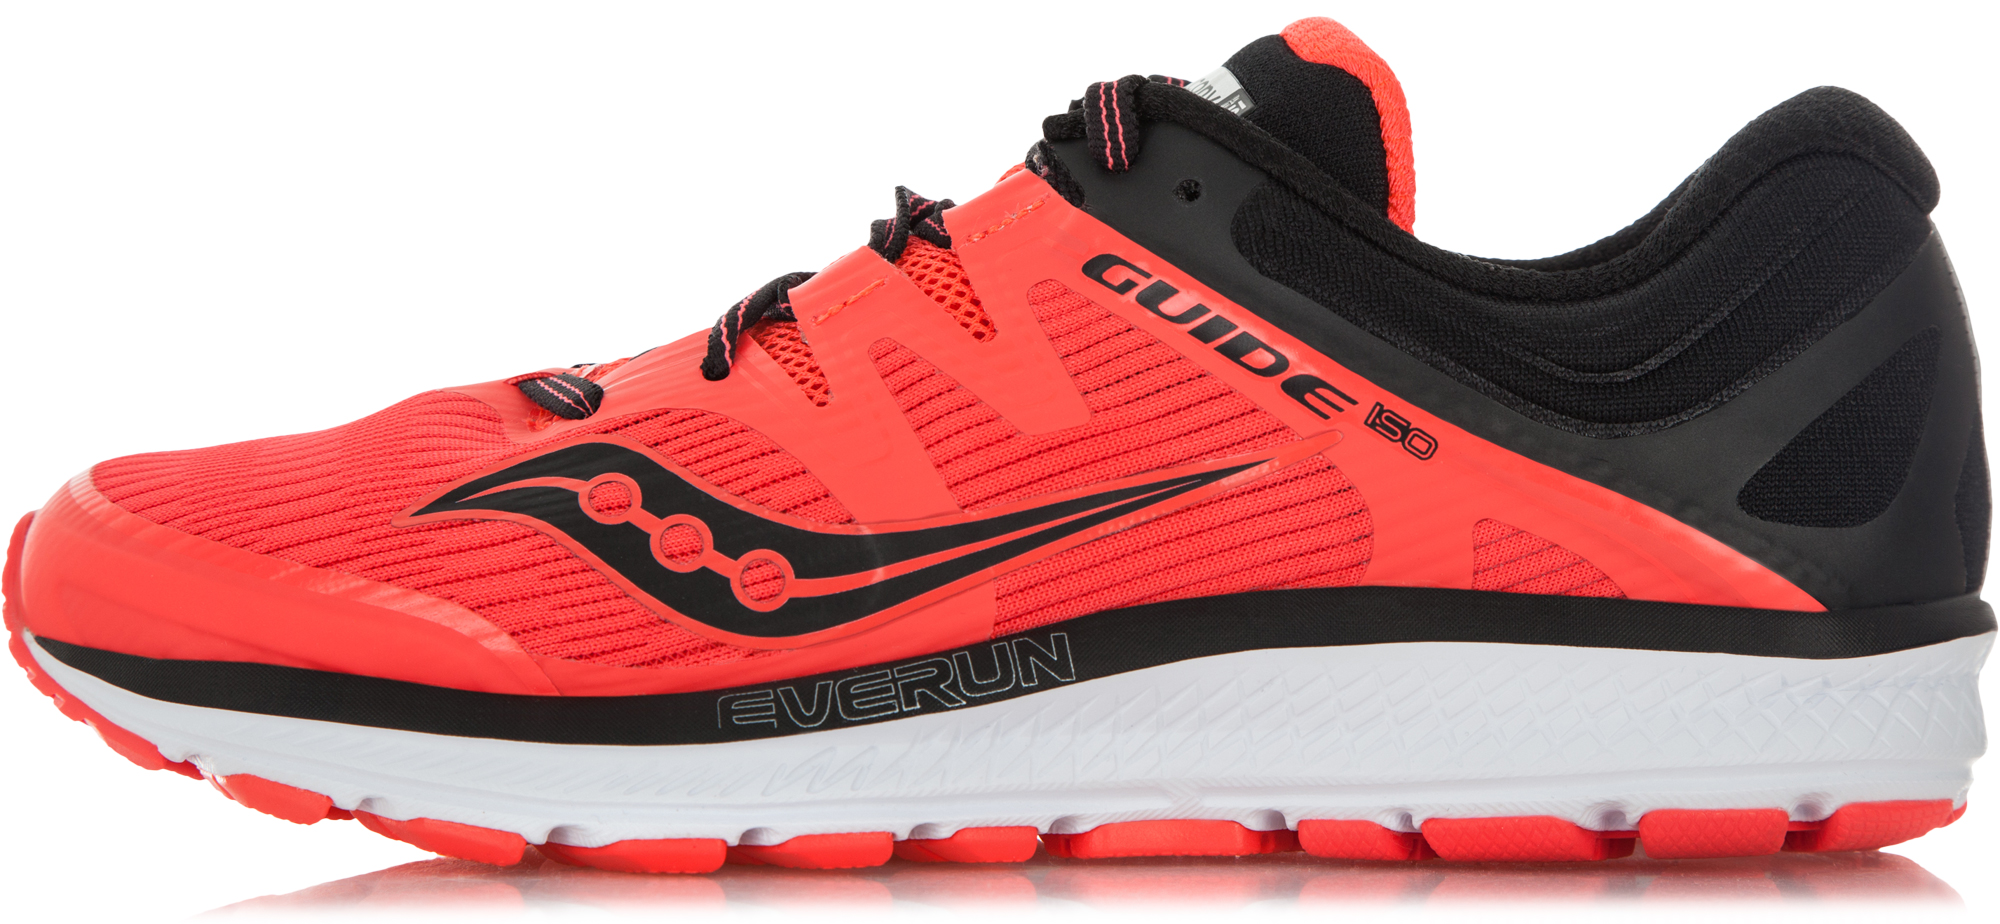 Saucony Кроссовки женские Saucony Guide ISO, размер 40